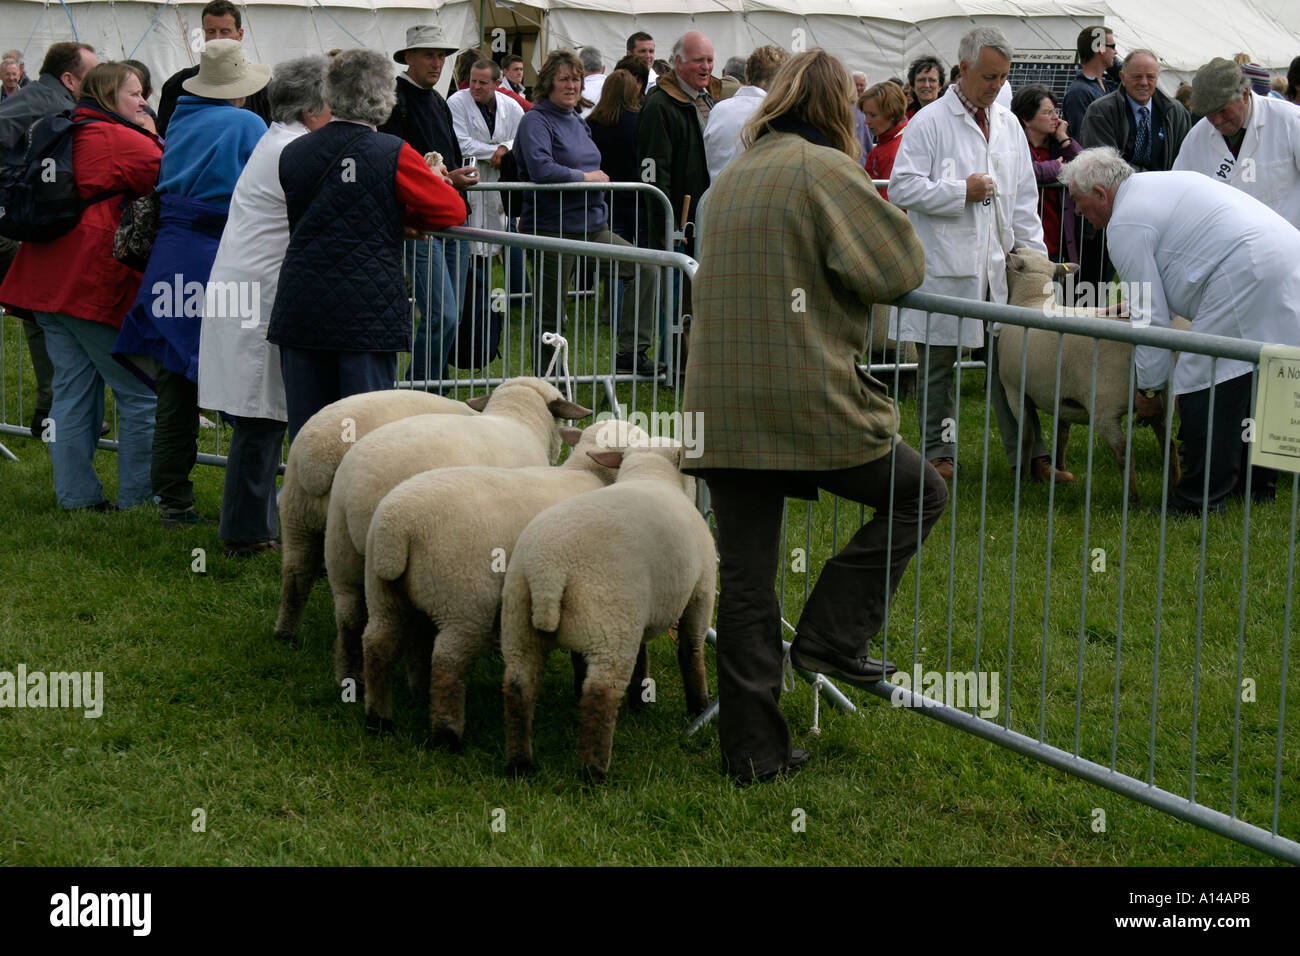 Farmers showing sheep at Devon County Show UK - Stock Image